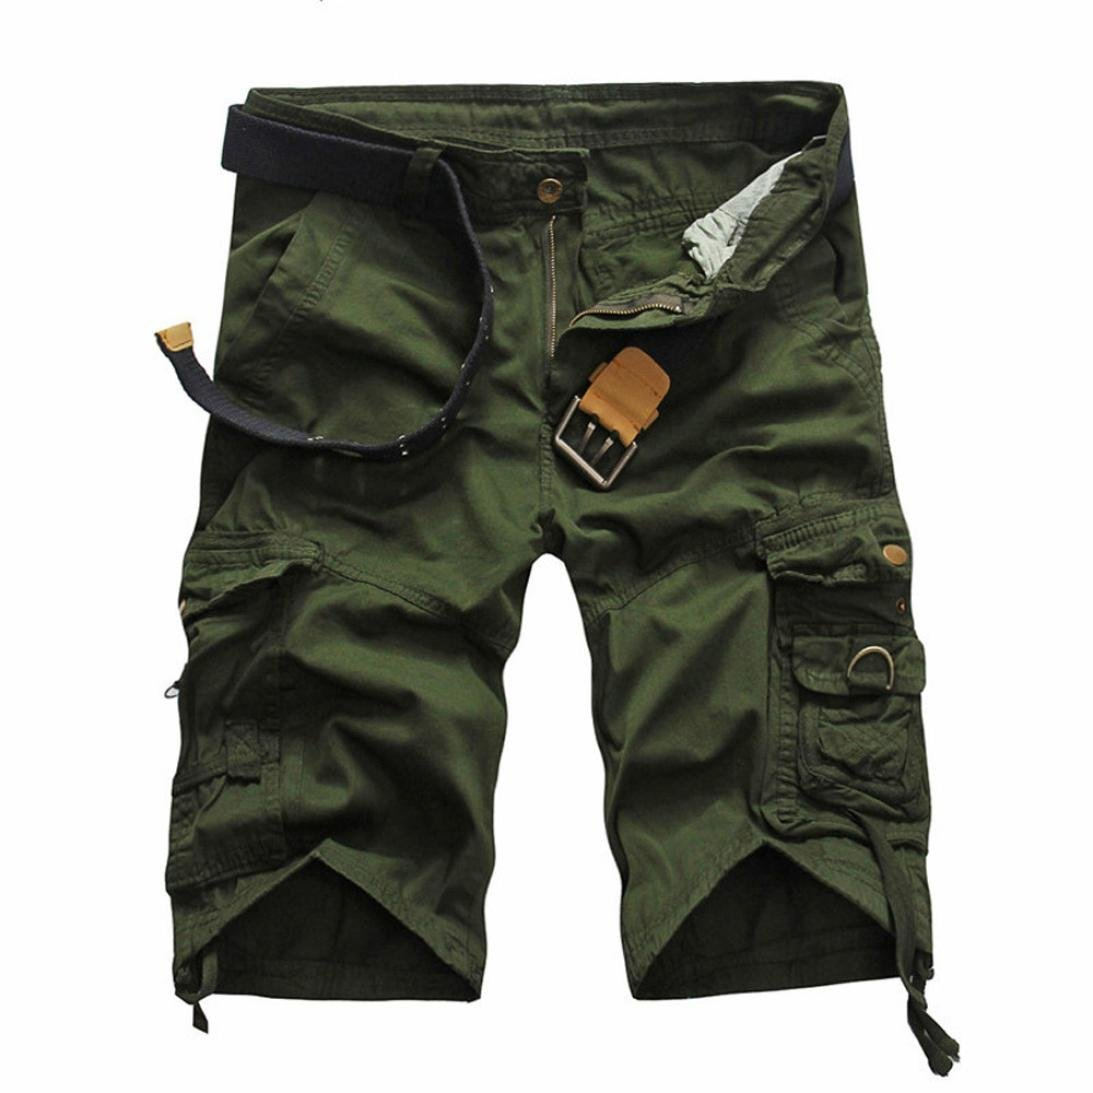 WUAI Clearance Men's Casual Cargo Gym Jogging Fashion Comfy Multi Pocket Summer Shorts(Army Green , Size 31)